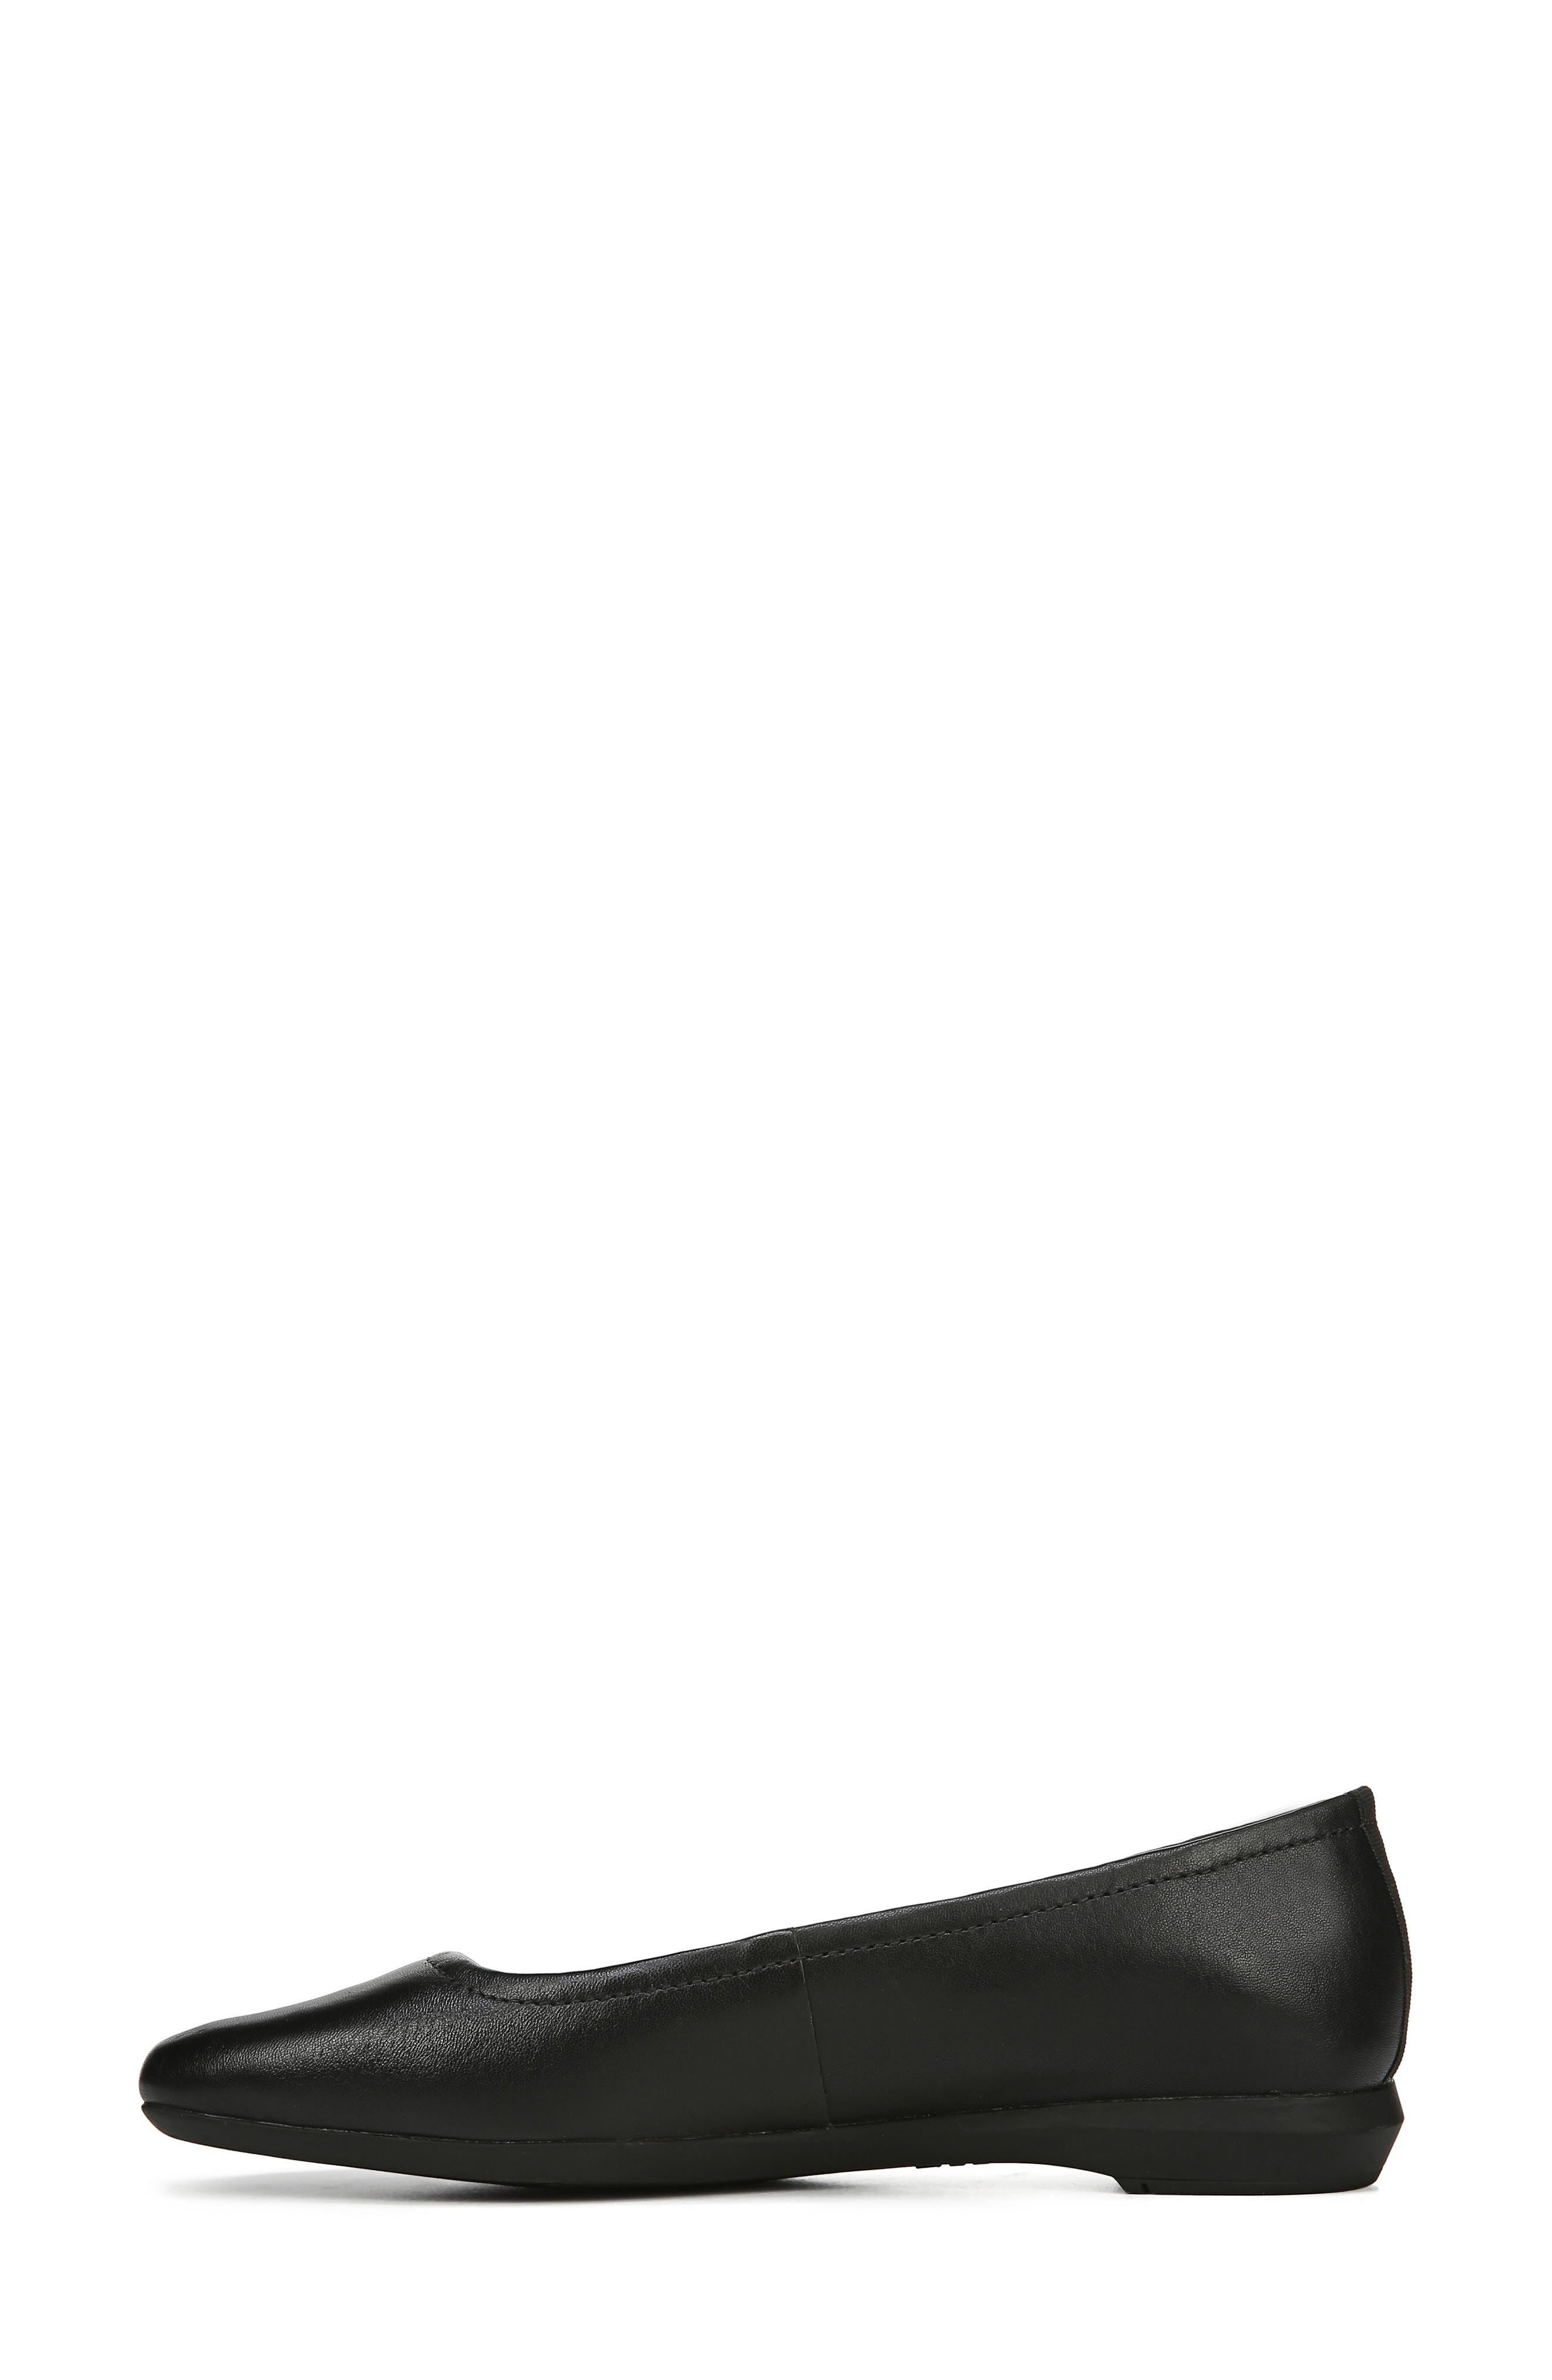 NATURALIZER,                             Alya Flat,                             Alternate thumbnail 8, color,                             BLACK LEATHER